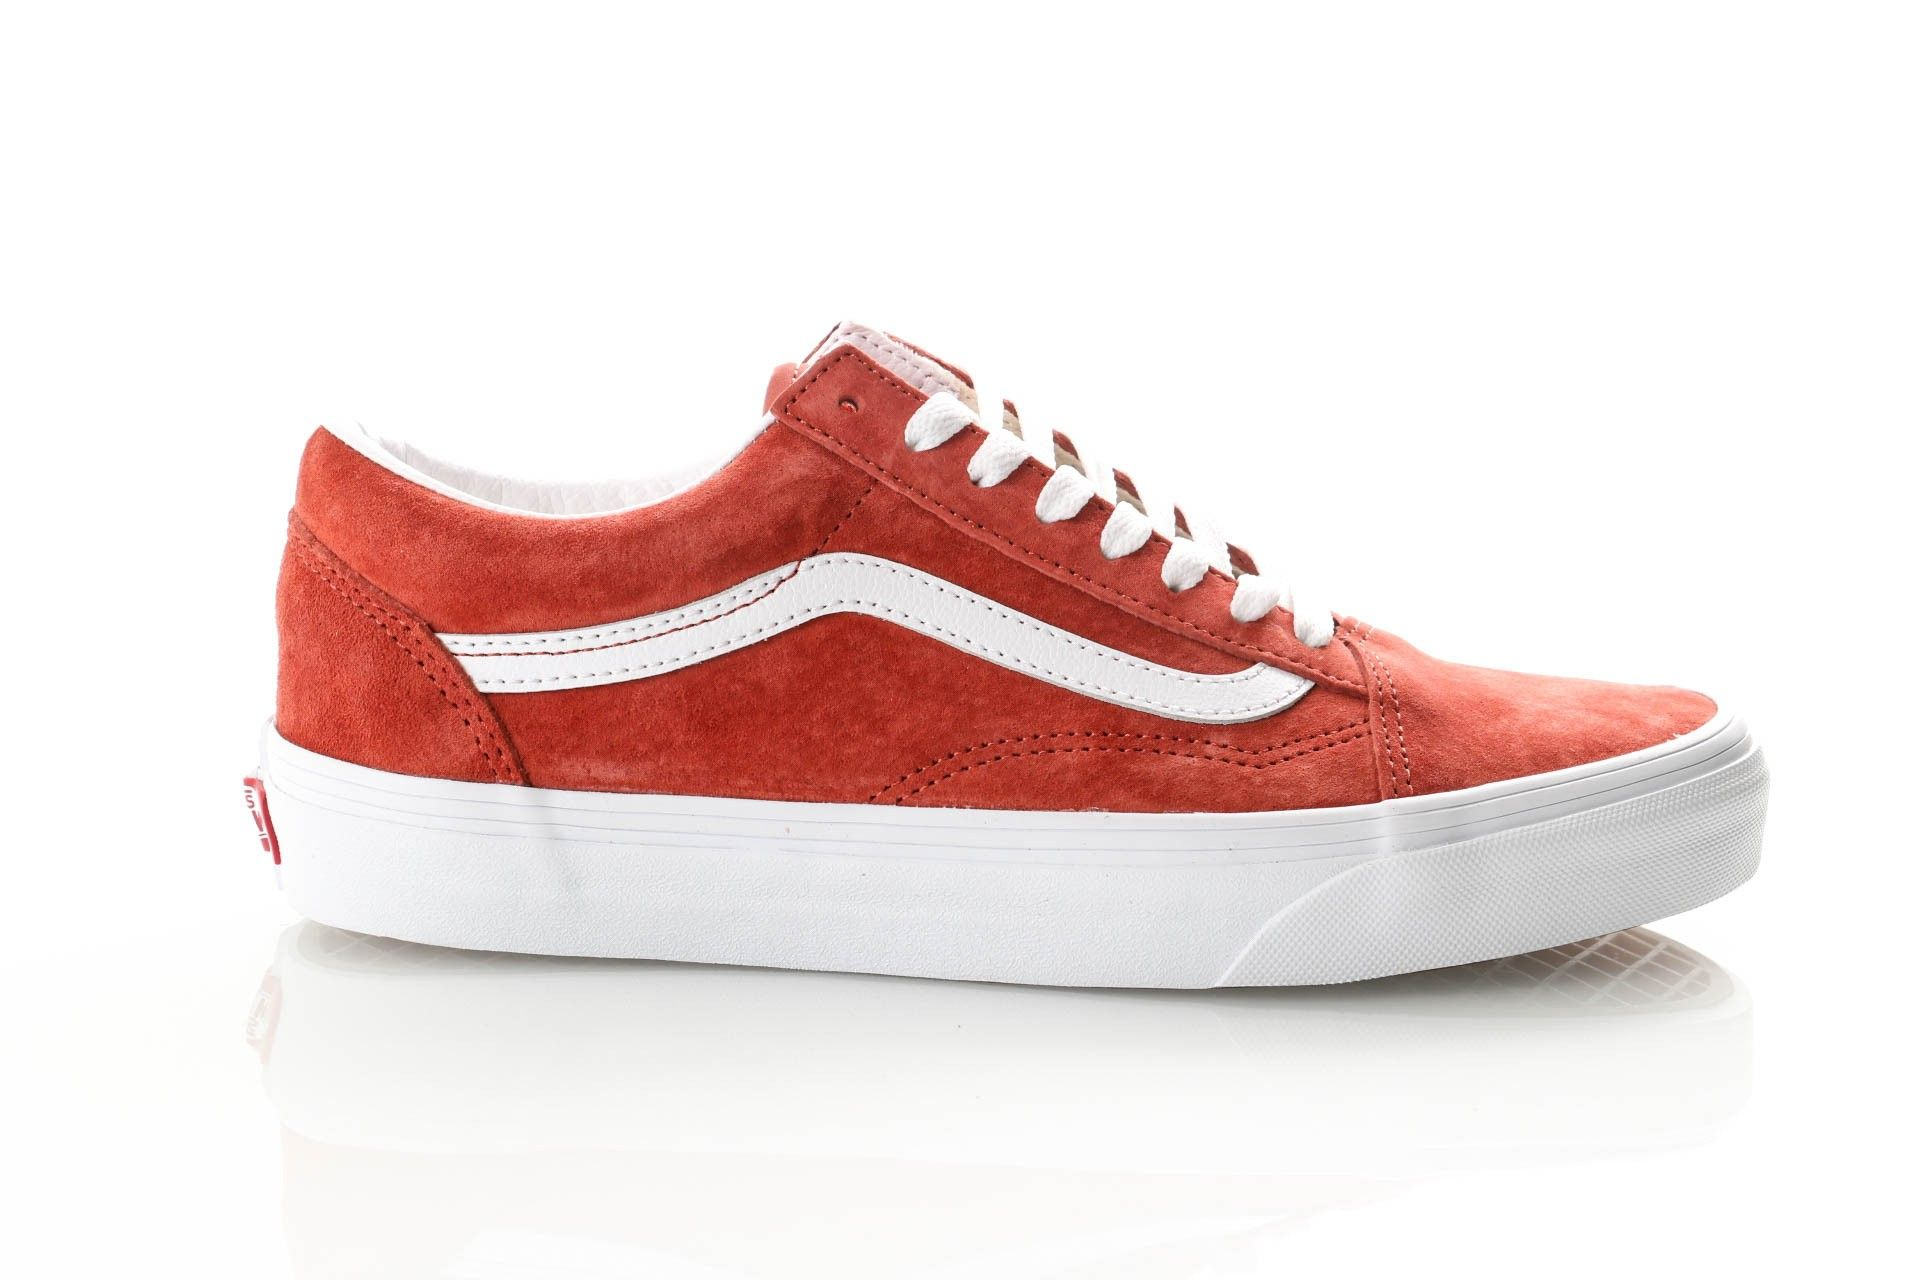 Afbeelding van Vans Ua Old Skool Vn0A4Bv5V751 Sneakers (Pig Suede) Burnt Brick/True White